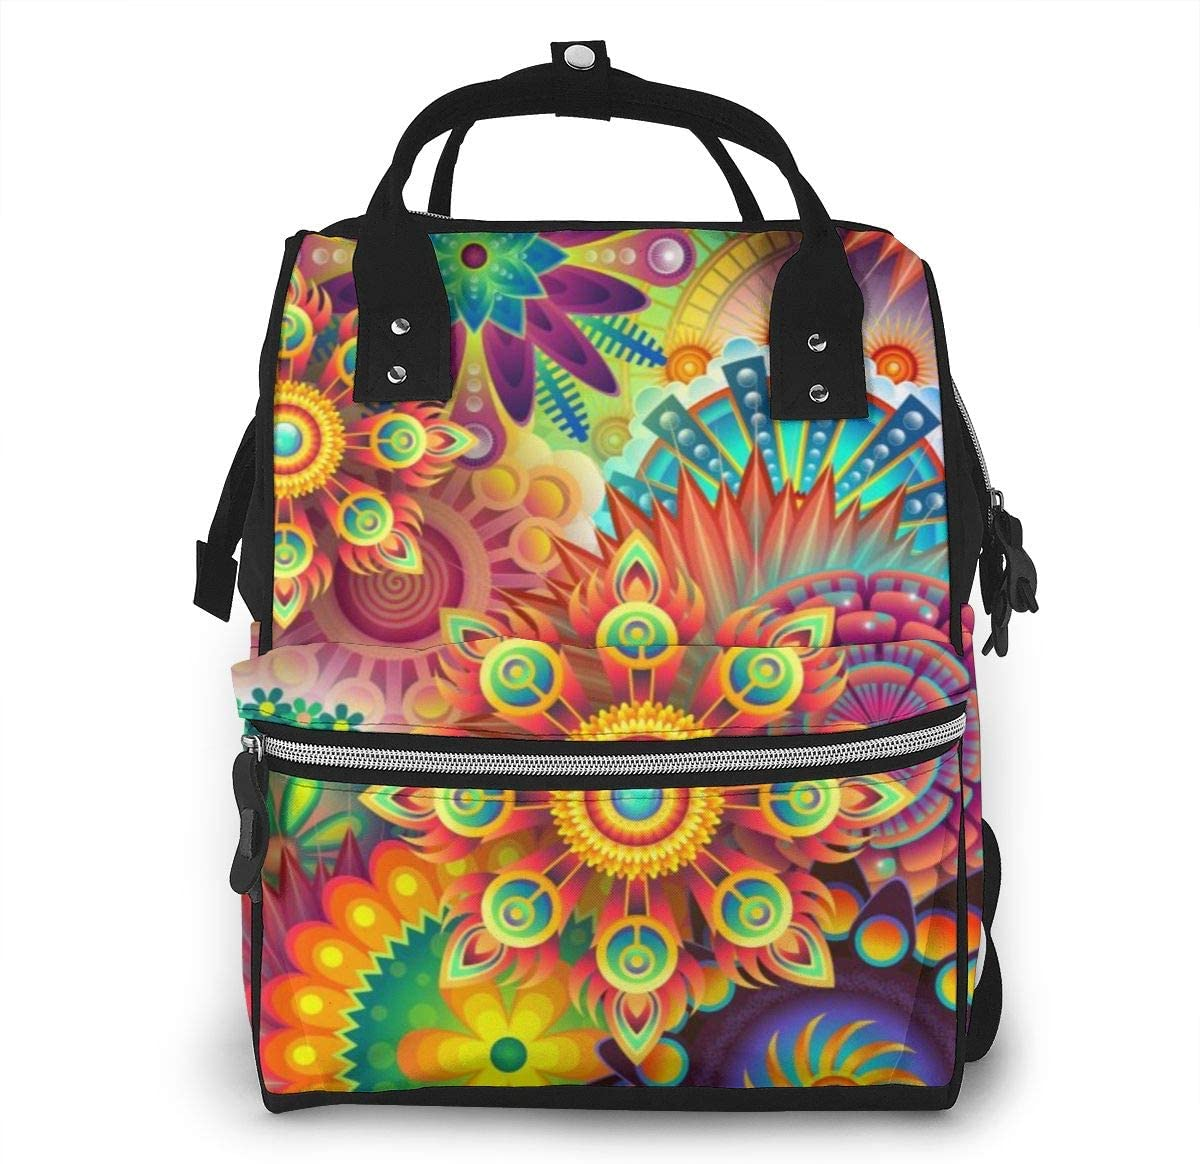 NiYoung Diaper Bag Backpack,Stylish Baby Nappy Bags for Mom and Dad,Waterproof,Multi-Function Travel Back Pack for Boys and Girls,Large Capacity and Durable,Psychedelic Trippy Mandala Flower